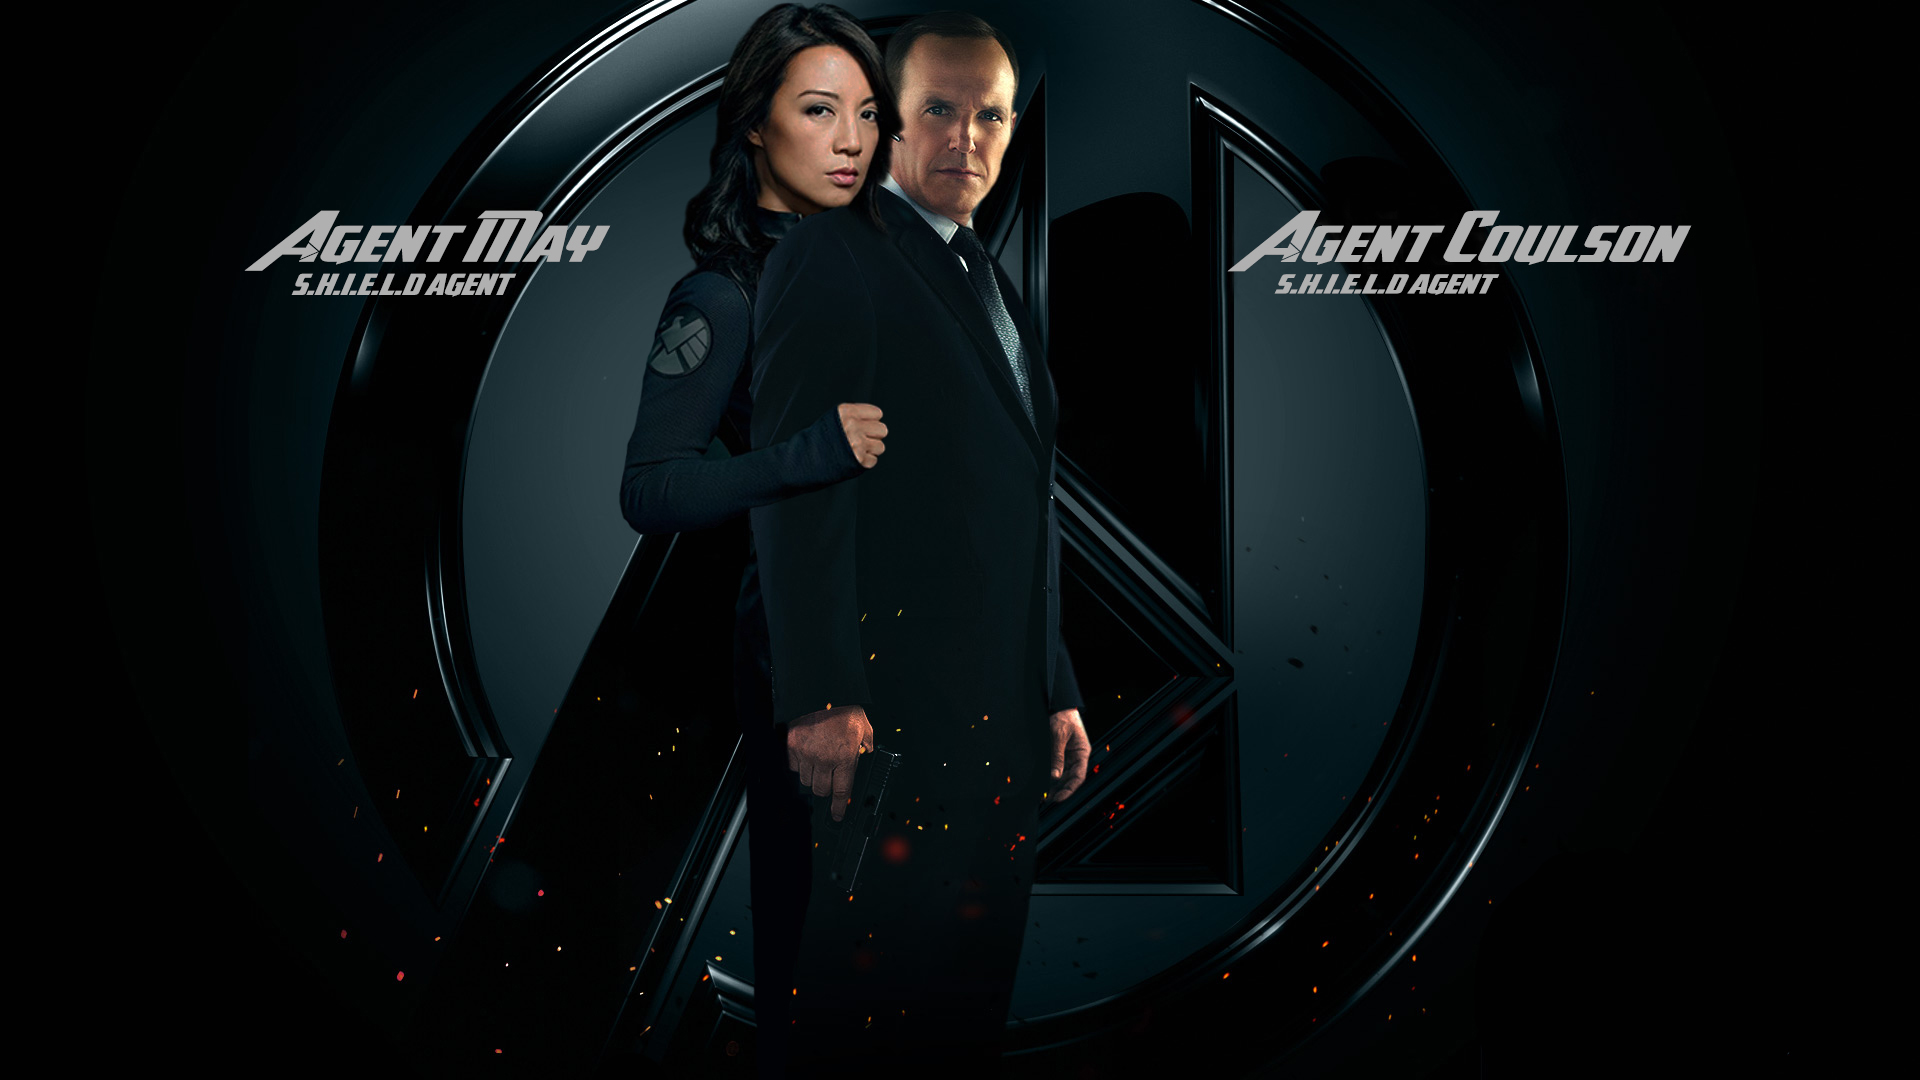 Agents of SHIELD Backgrounds   Wallpaper High Definition High 1920x1080